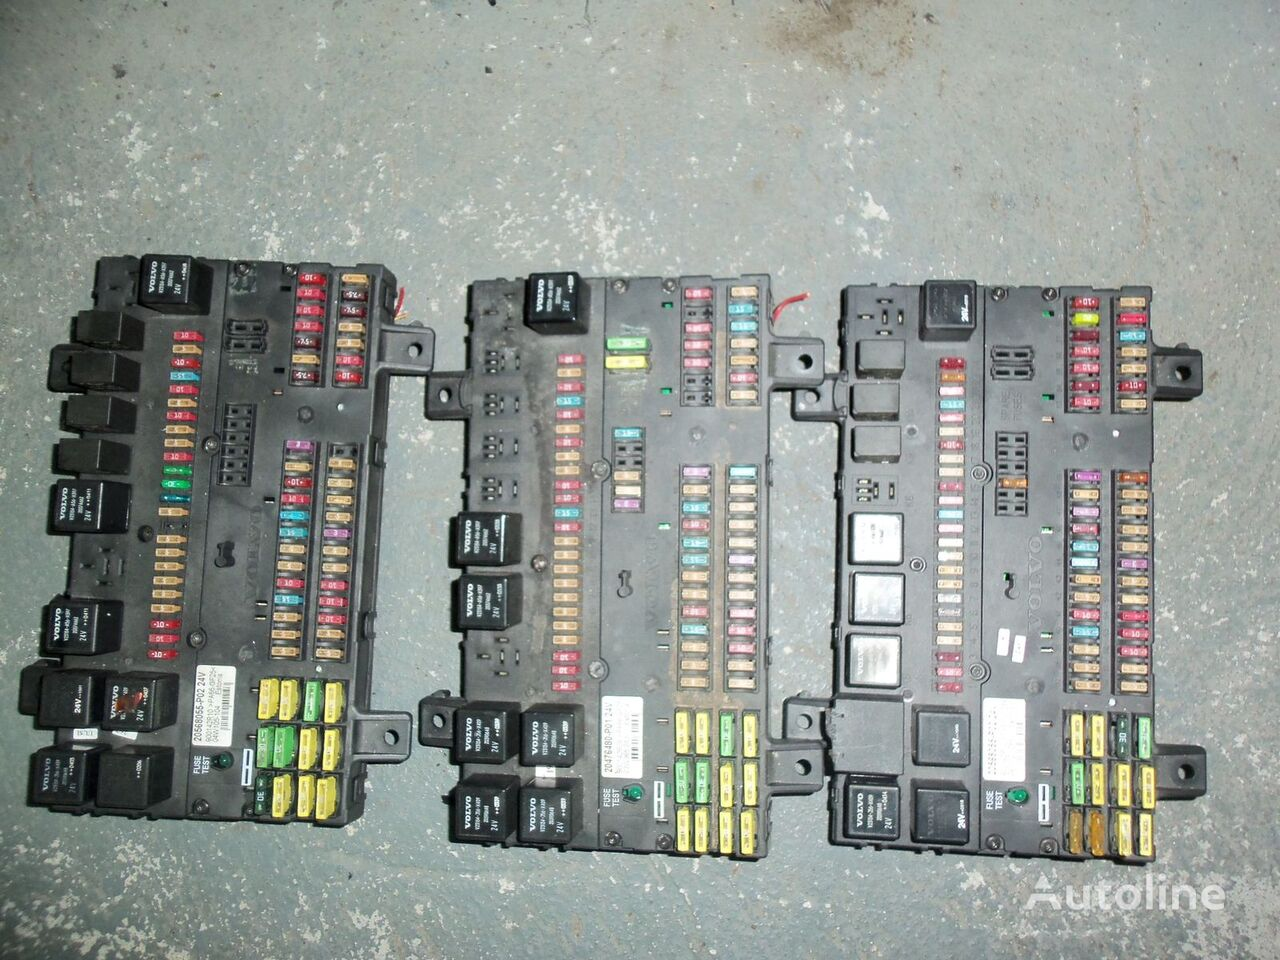 hight resolution of volvo fuse and relay center central electrical box 20568055 217 20568055 21732199 fuse blocks for volvo fh13 tractor unit for sale from lithuania